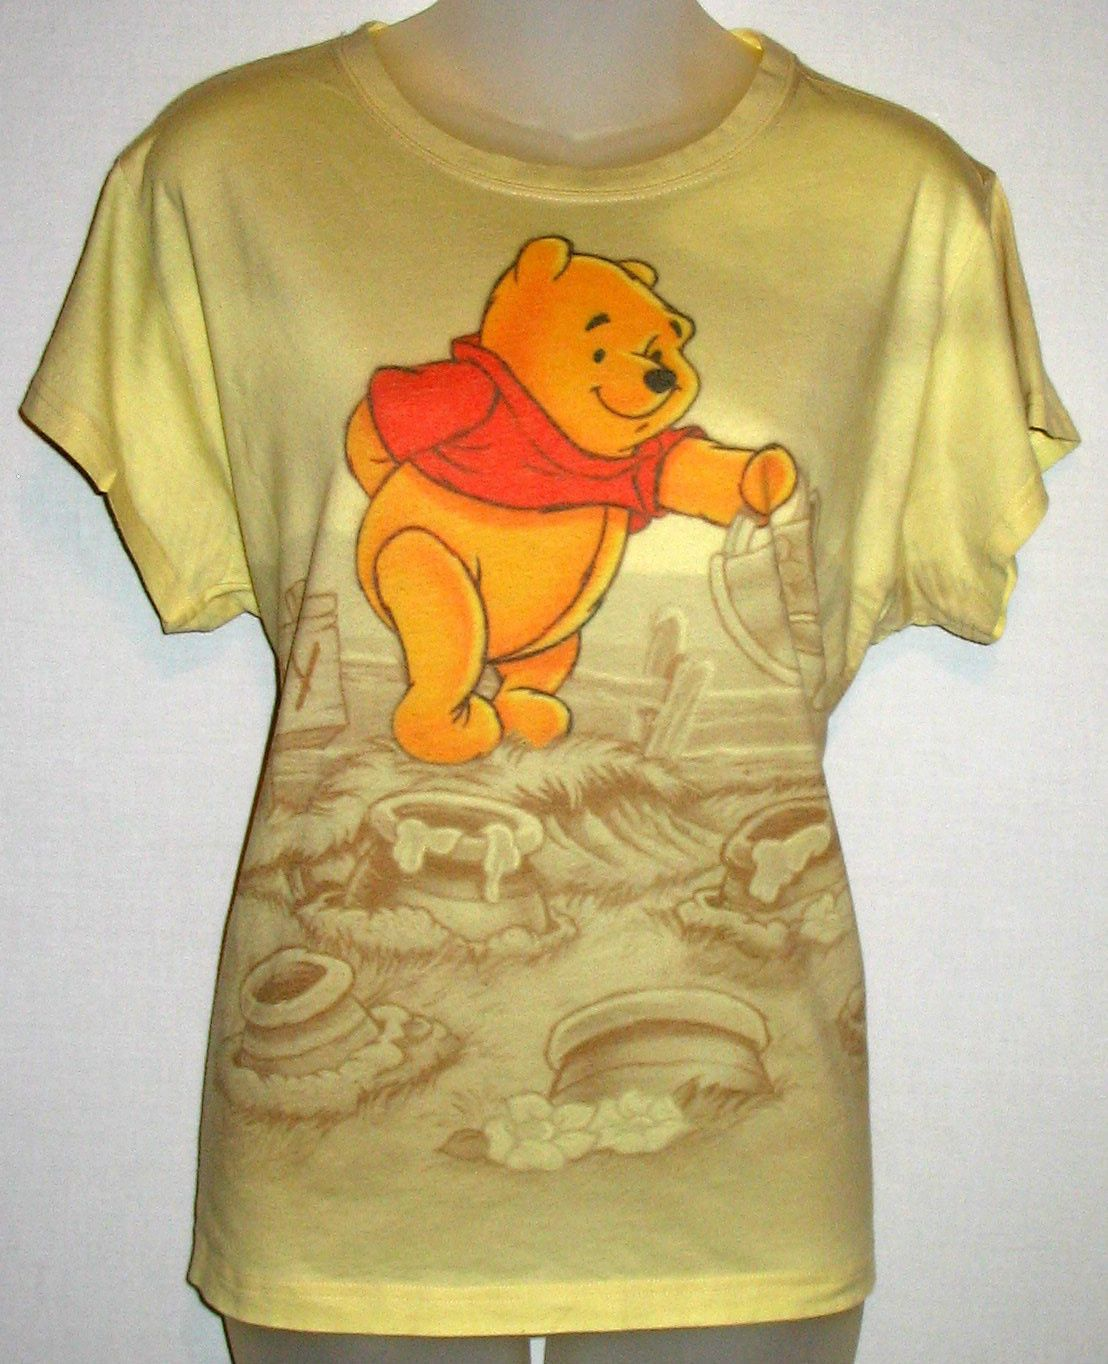 Disney Women s Yellow T-Shirt Top W Winnie The Pooh - Size X-Large ... 2fcc83c44d